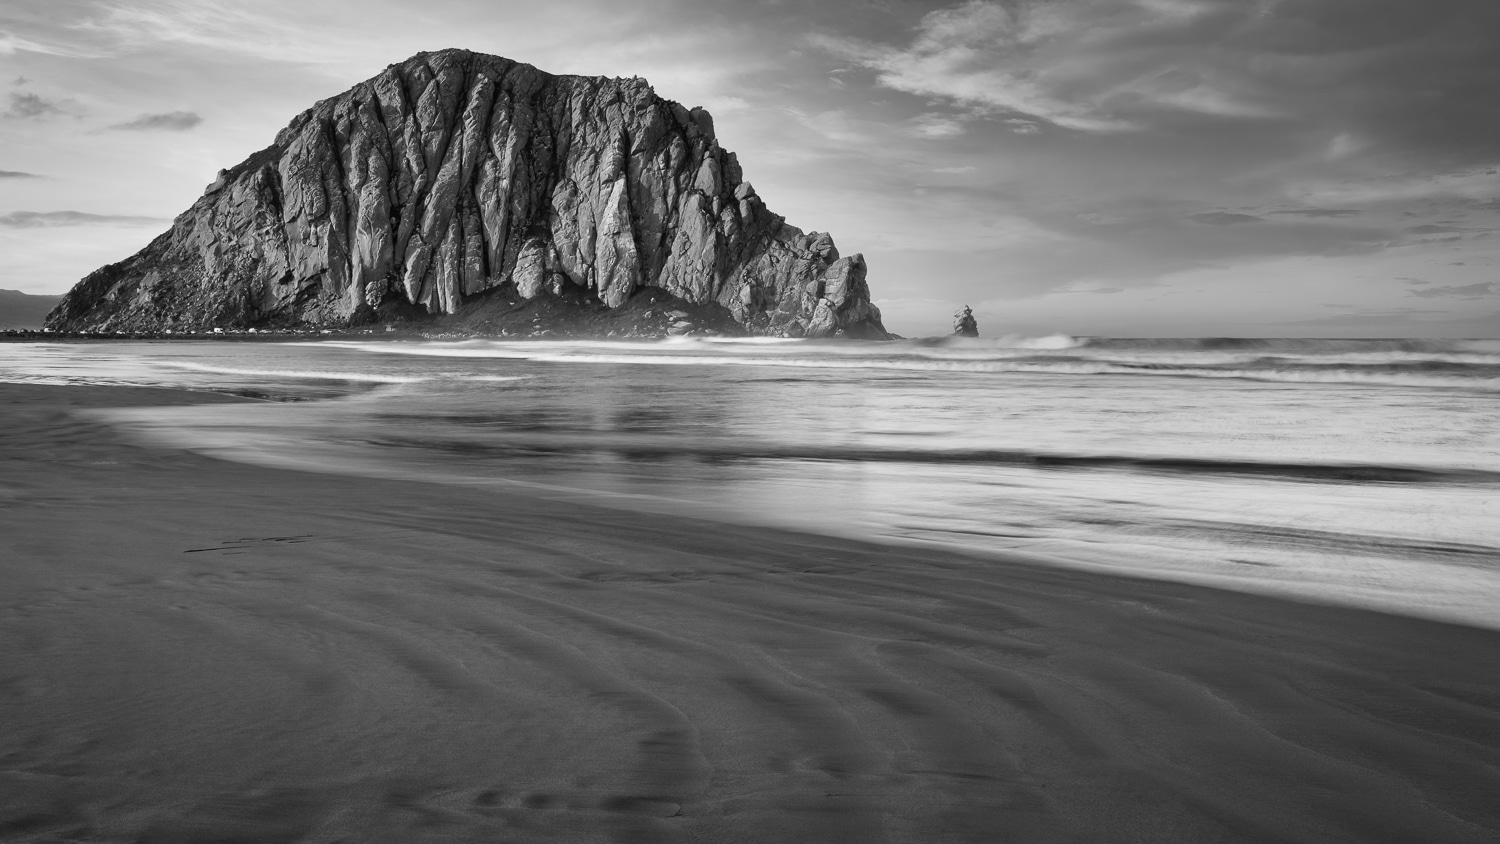 A Magical Morning at Morro Rock